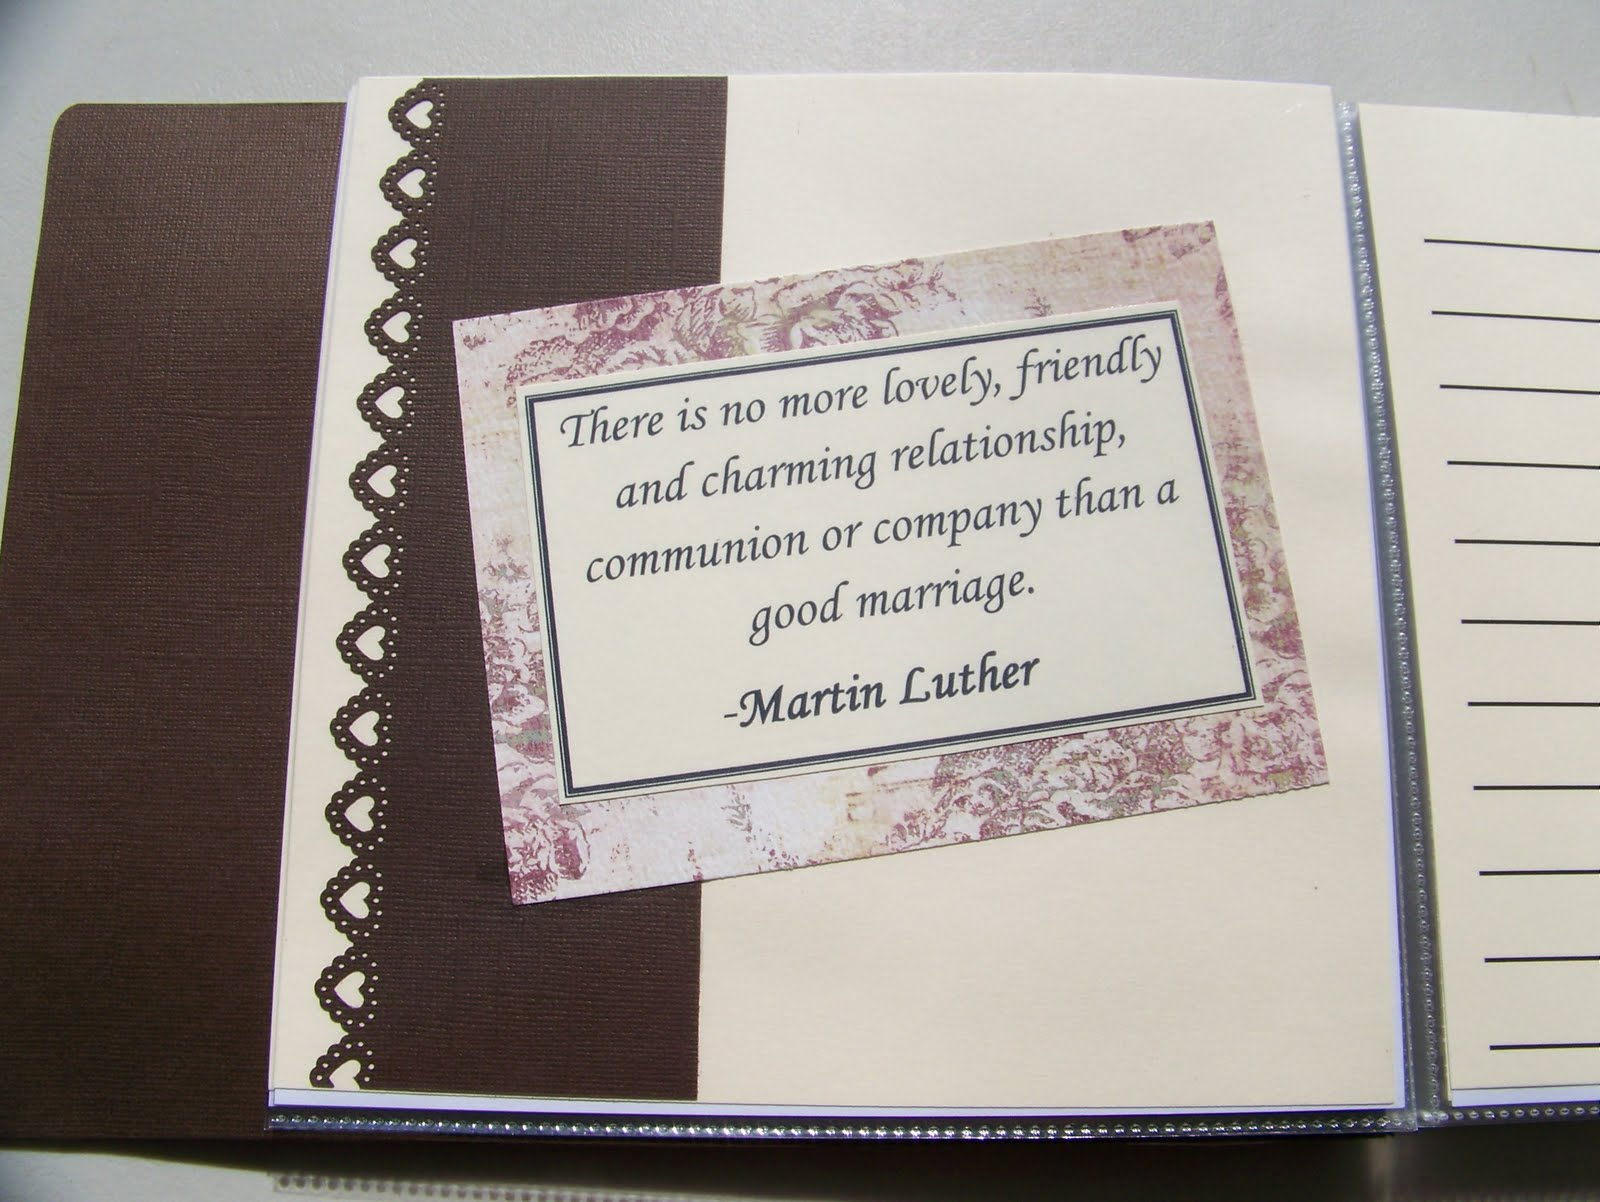 Wedding Shower Gift Card Phrases : There are 6 pages that I used these quotes.